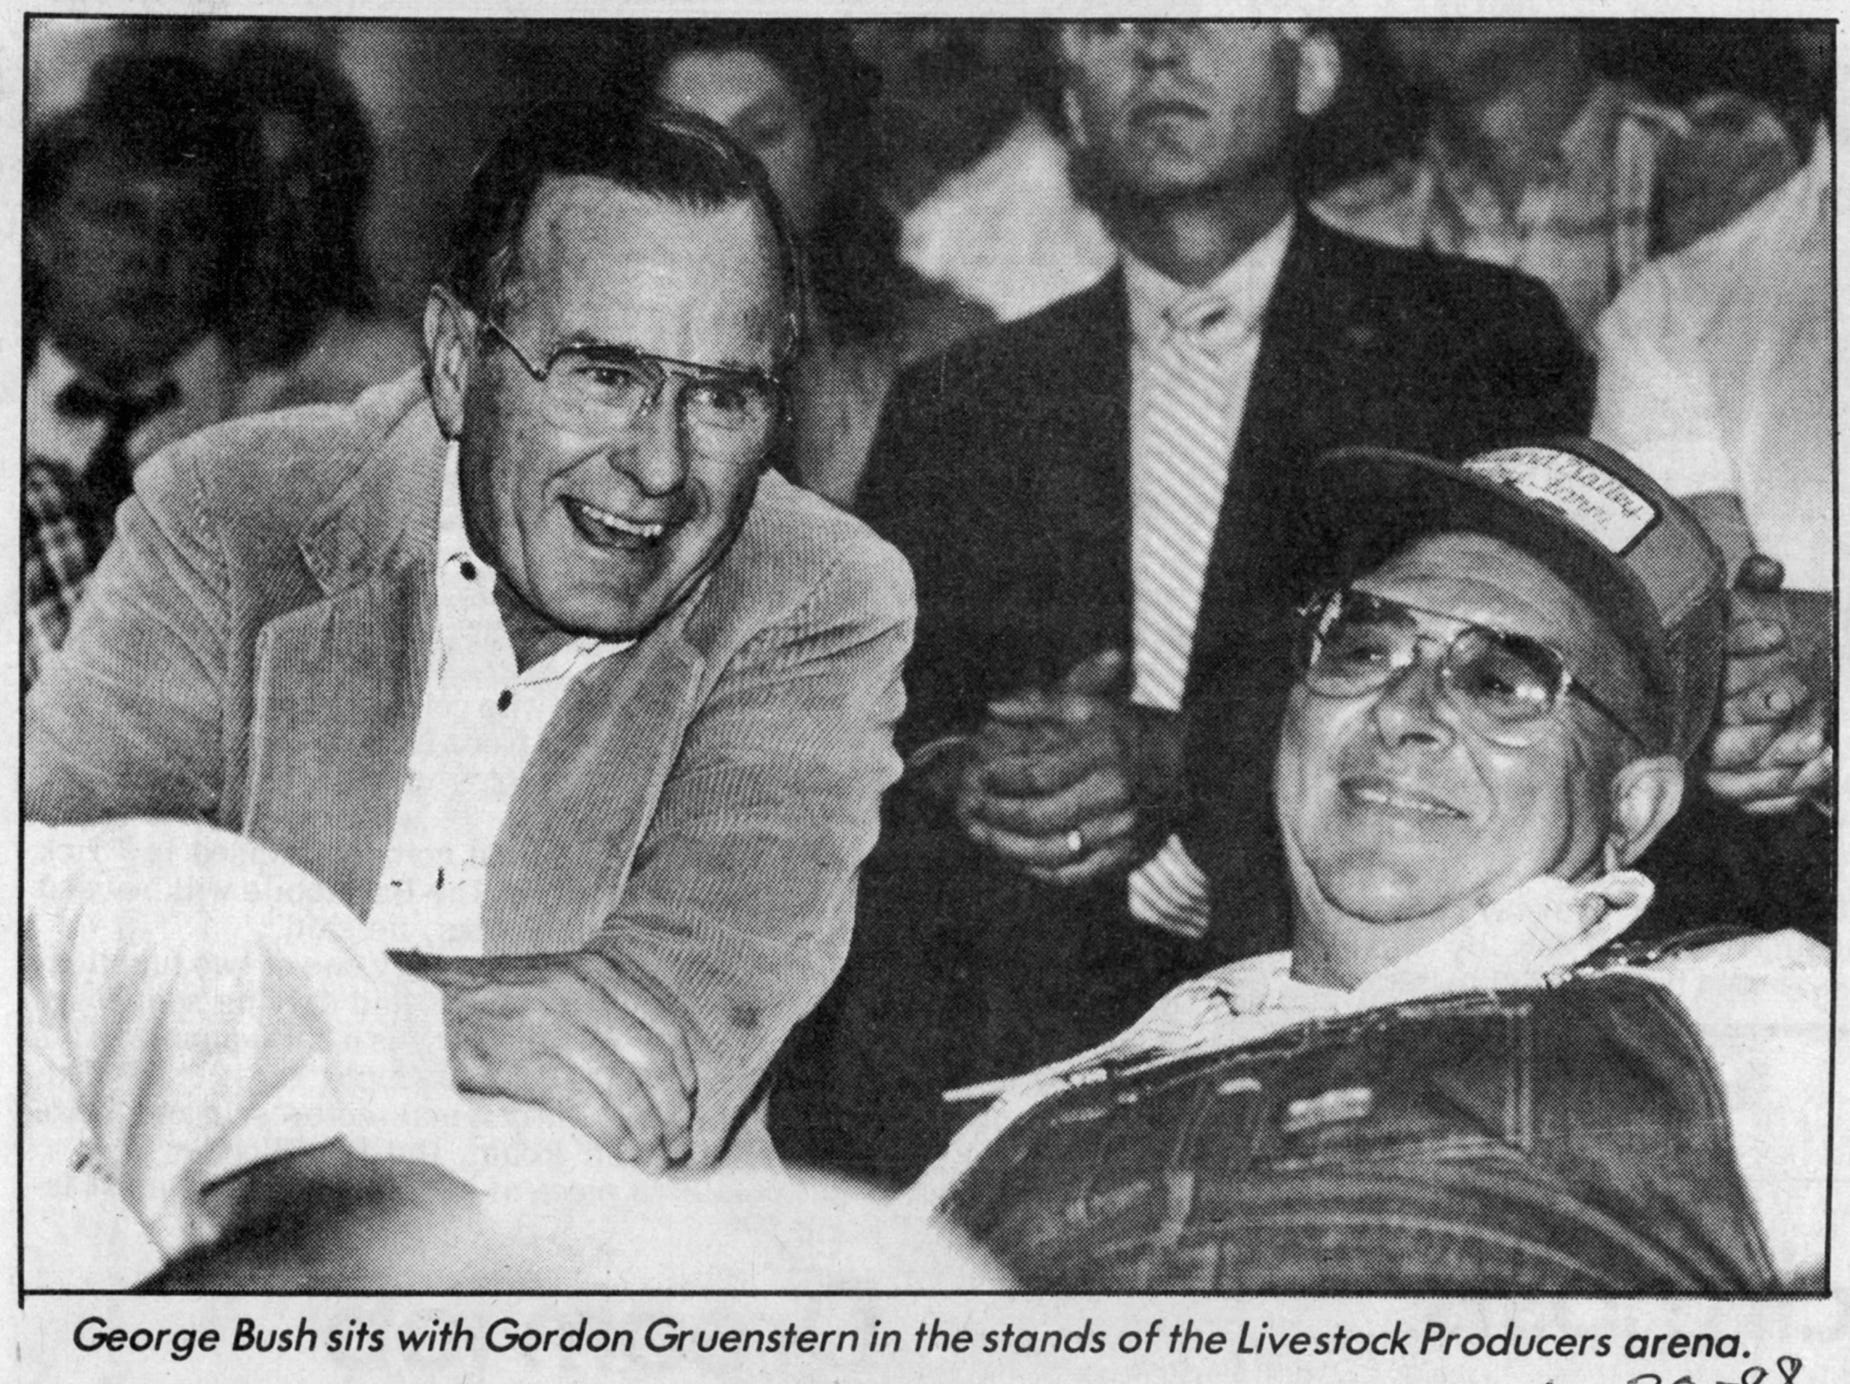 June 30, 1988, Bush visit pleases farmers article by Tom Fischer-Smith and Brenda Regeth in The Post-Crescent. Vice president George H. W. Bush visited the Midwest Livestock Producers market in Marion.